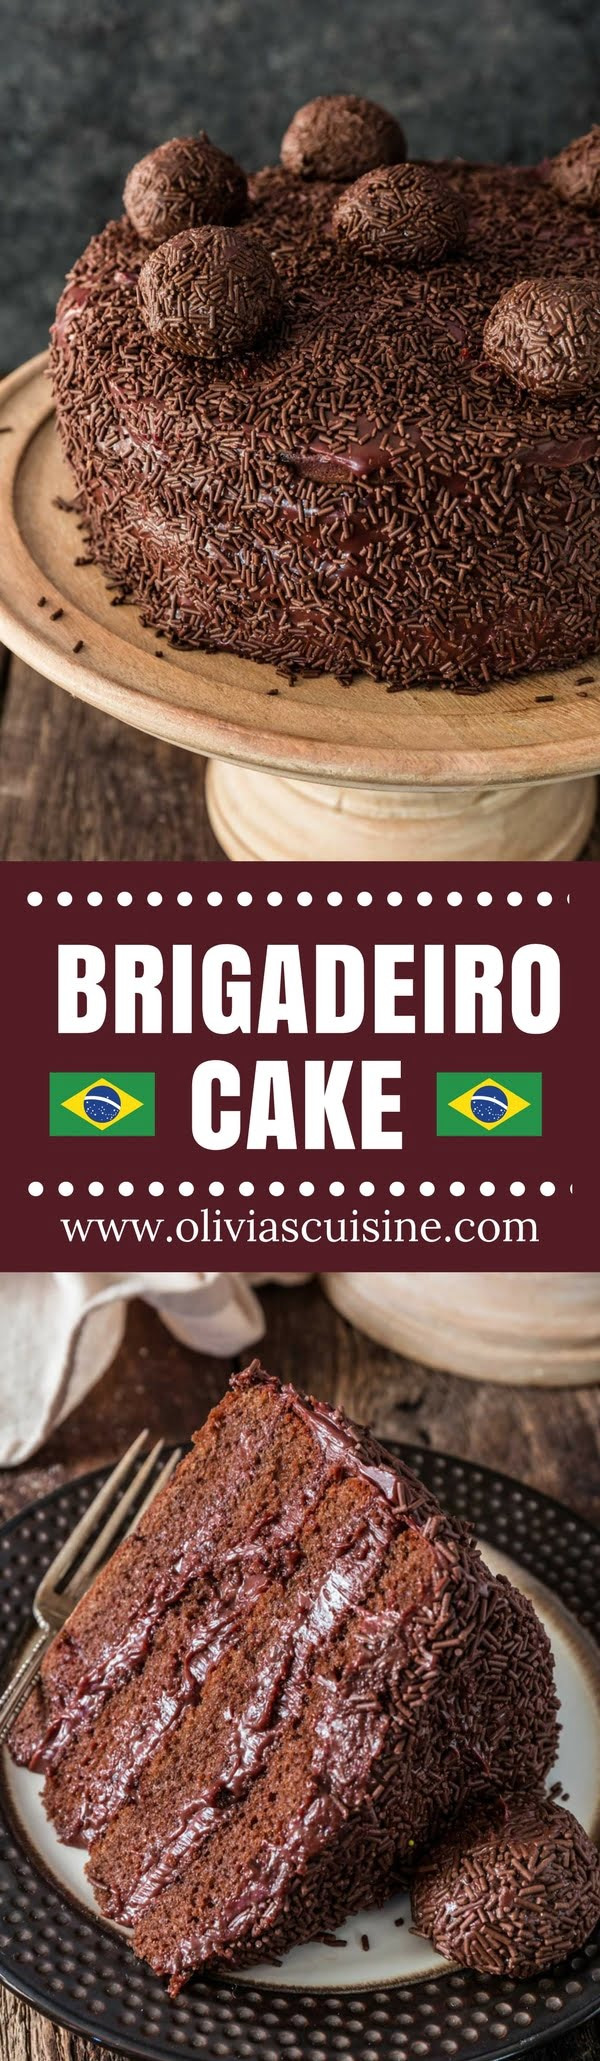 Brigadeiro Cake | www.oliviascuisine.com | Ask any Brazilian what is their favorite cake and you will always get the same answer: brigadeiro cake. Absolutely nothing compares to this rich, fudgy, moist chocolate cake! If you love brigadeiro, this is a must-try! (Recipe and food photography by @oliviascuisine.)